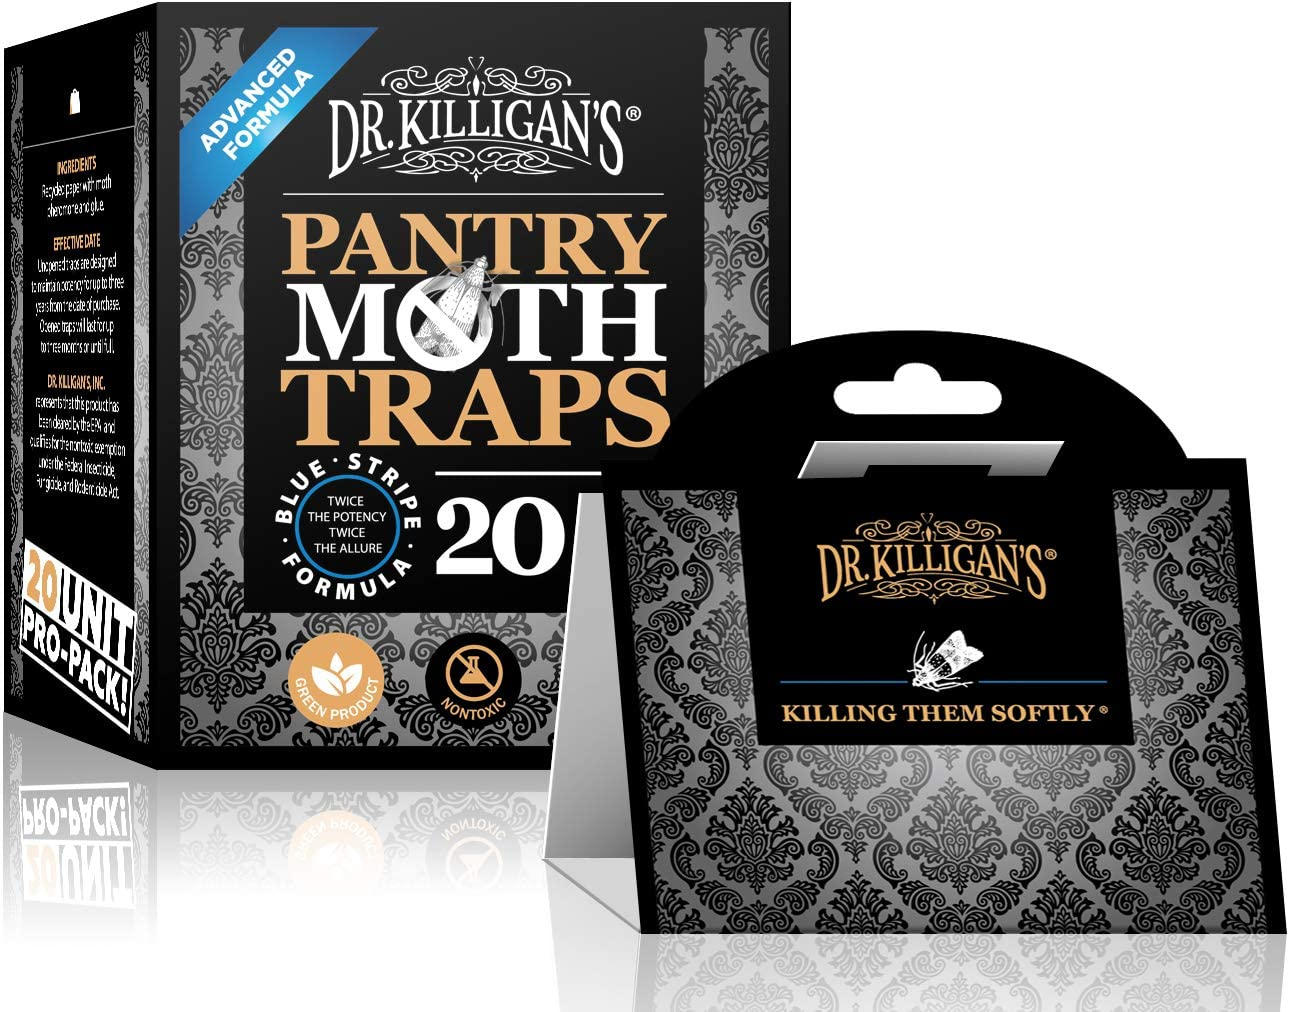 Dr. Killigan's Premium Pantry Moth Traps with Pheromones Prime | Safe, Non-Toxic with No Insecticides | Sticky Glue Trap for Food and Cupboard Moths in Your Kitchen | Organic (20, Black)